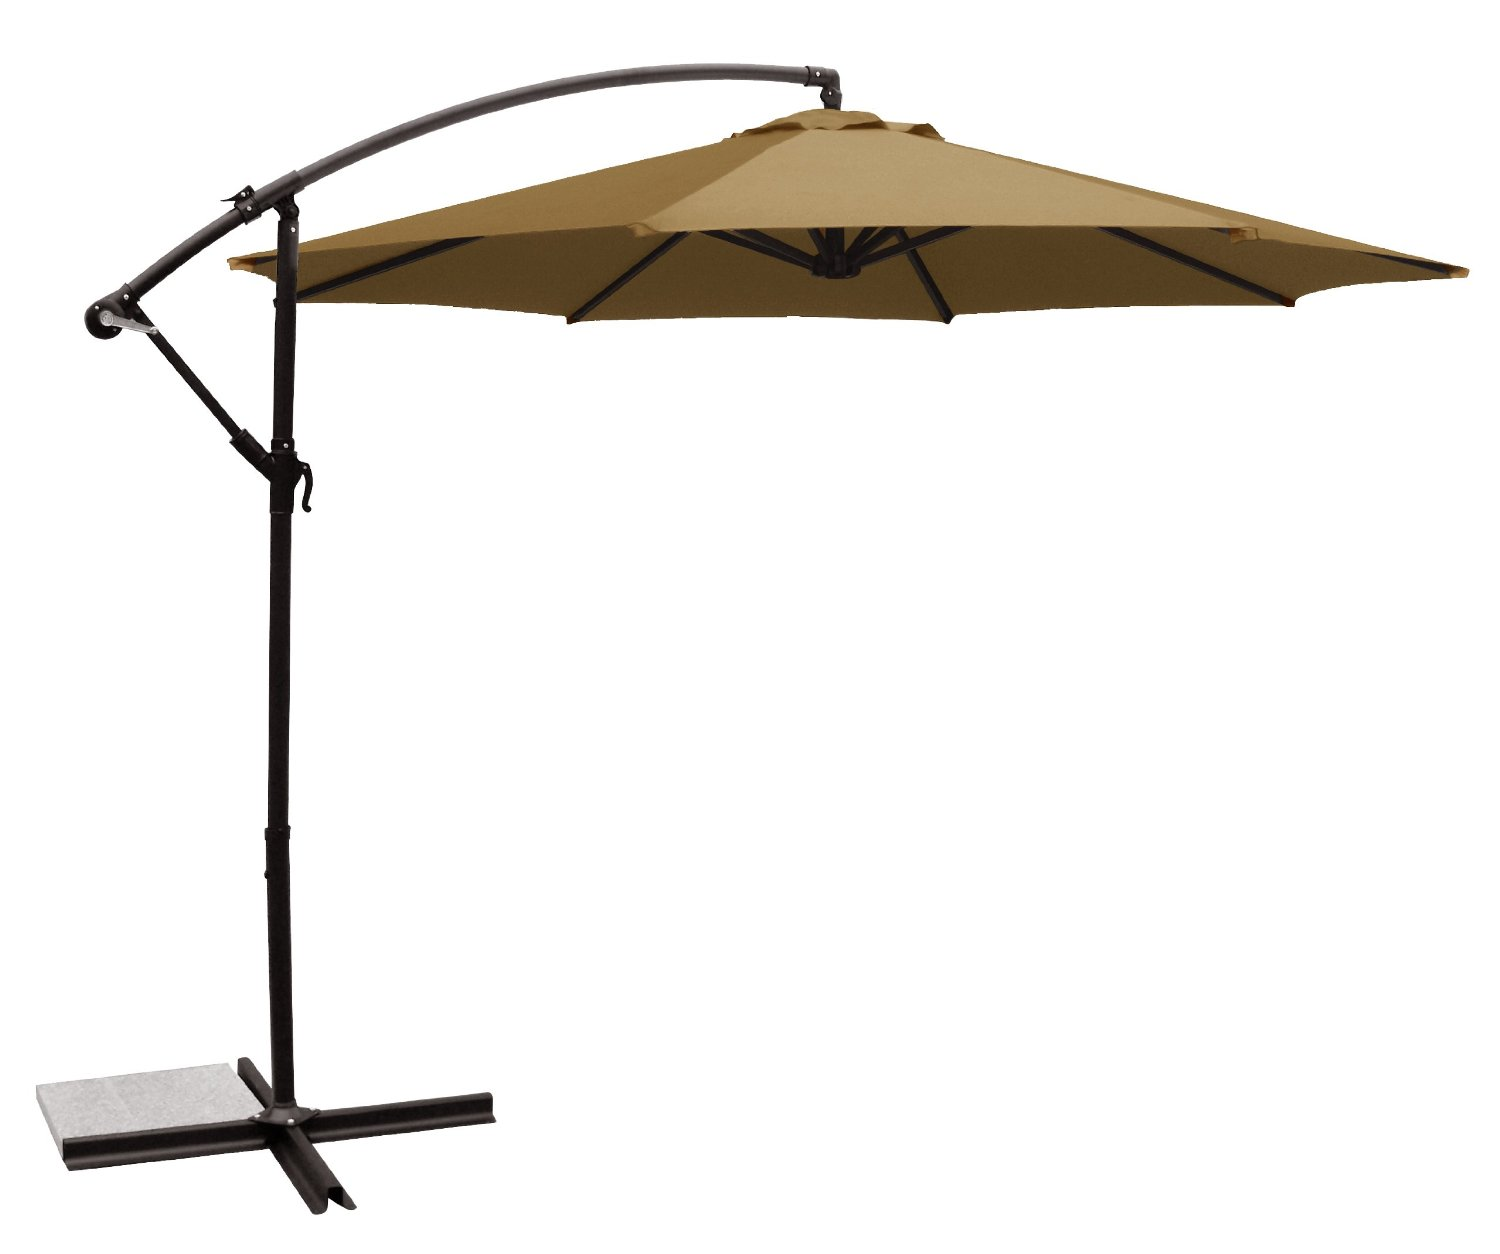 cantilever patio umbrella in tan with black metal stand for patio furniture ideas